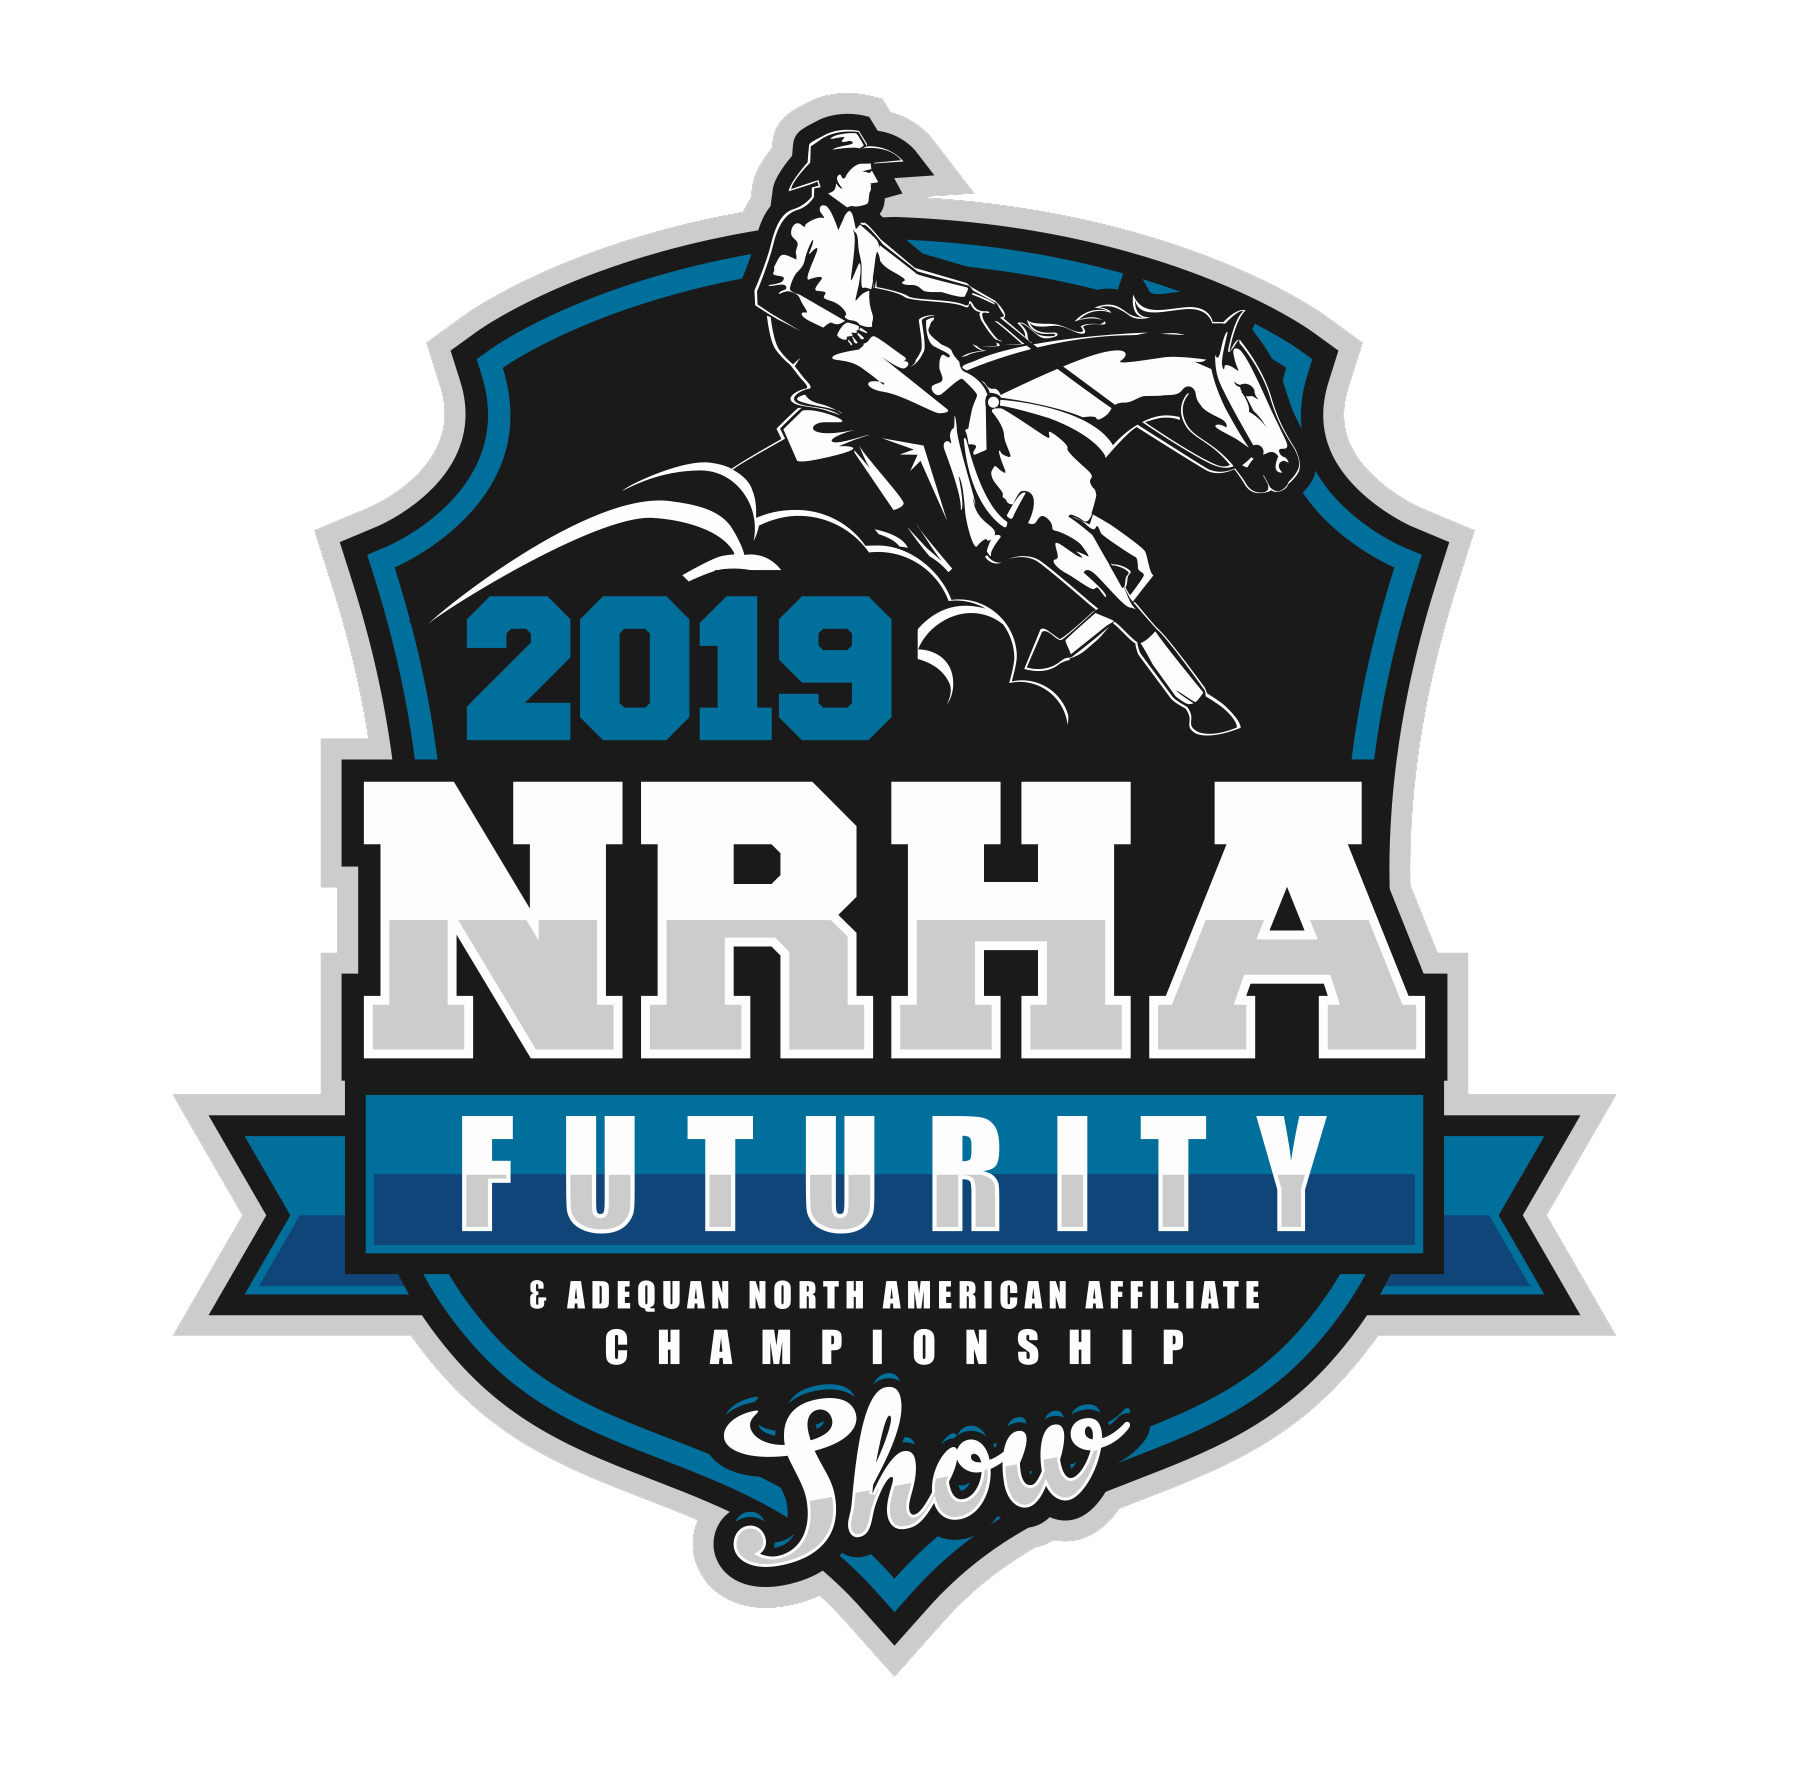 NRHA FUTURITY LOGO 1 (Black Background).jpg